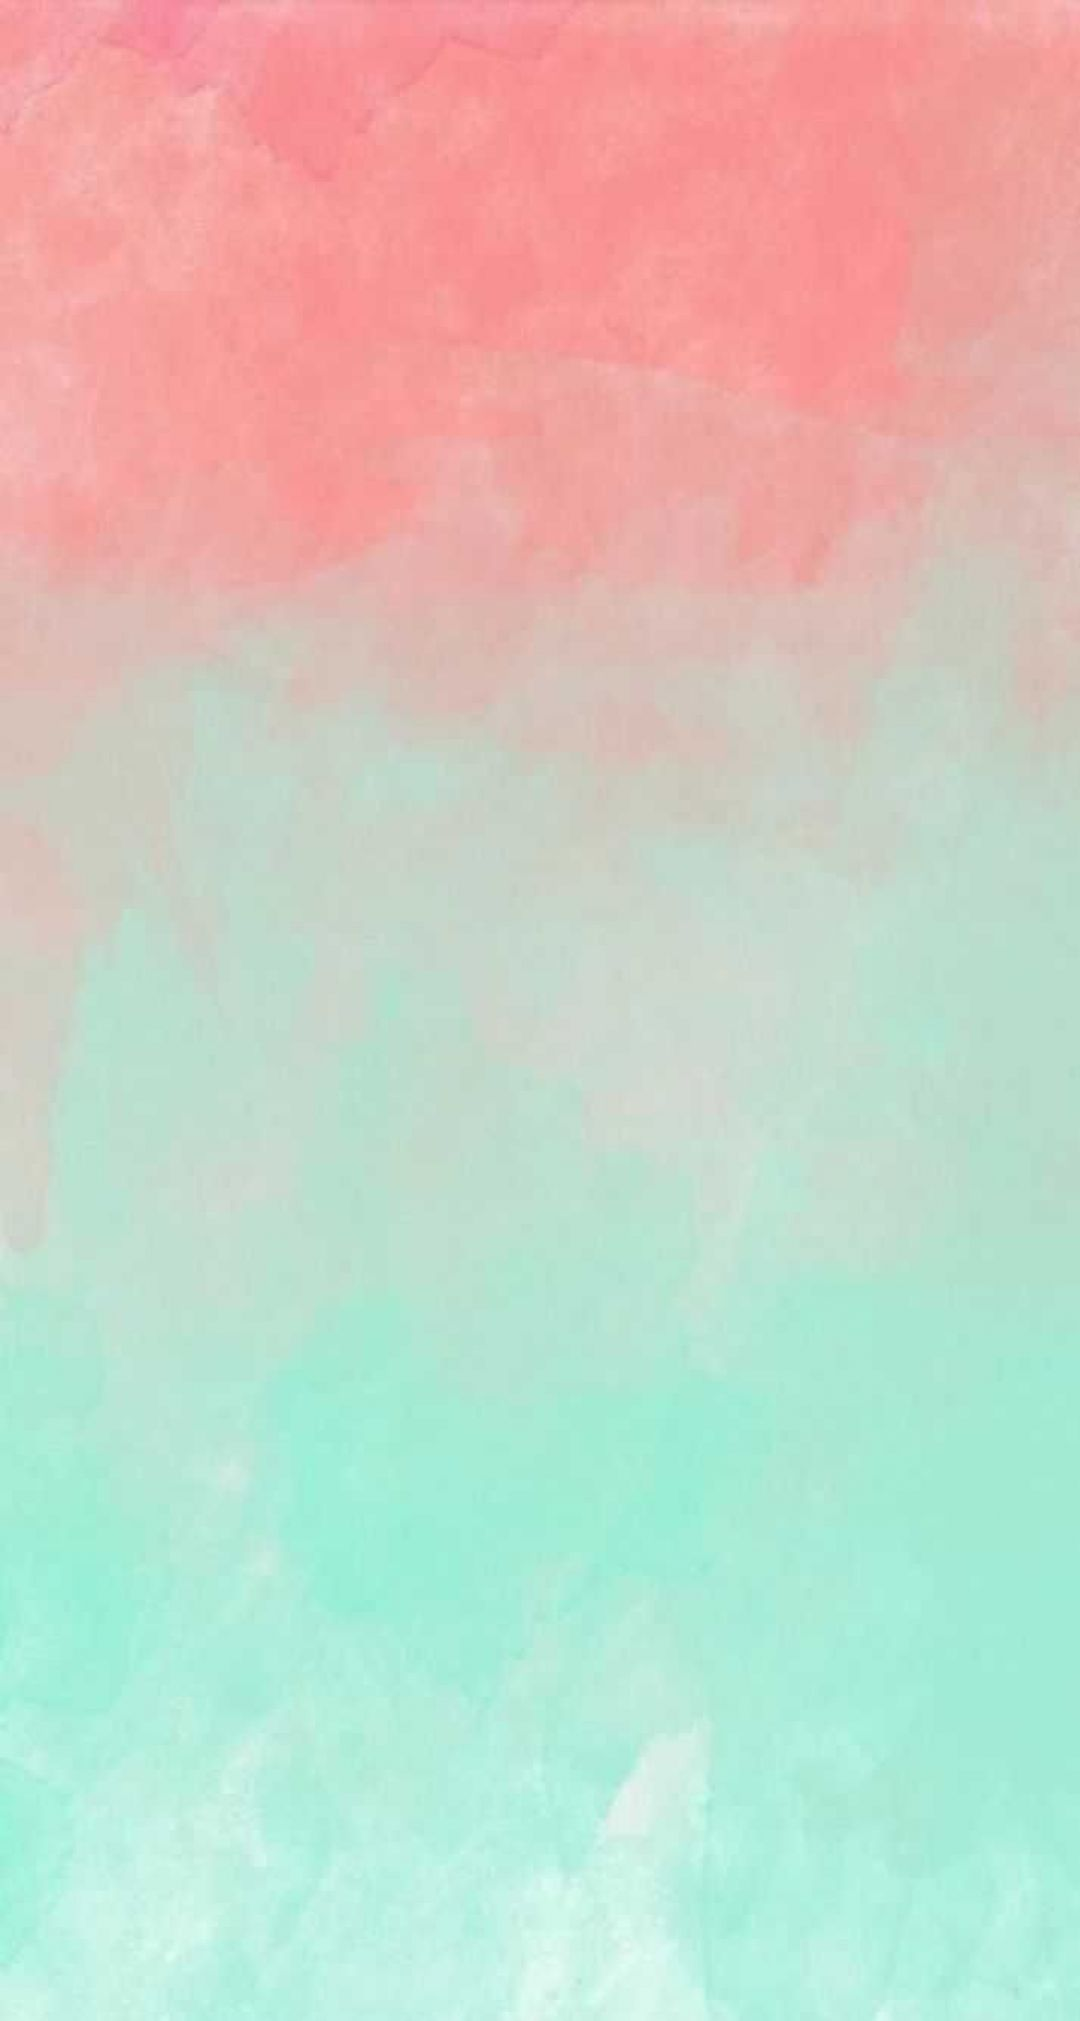 Mint Green Aesthetic HD Wallpapers (Desktop Background / Android / iPhone) (1080p, 4k) (35073) - 3D / Abstract